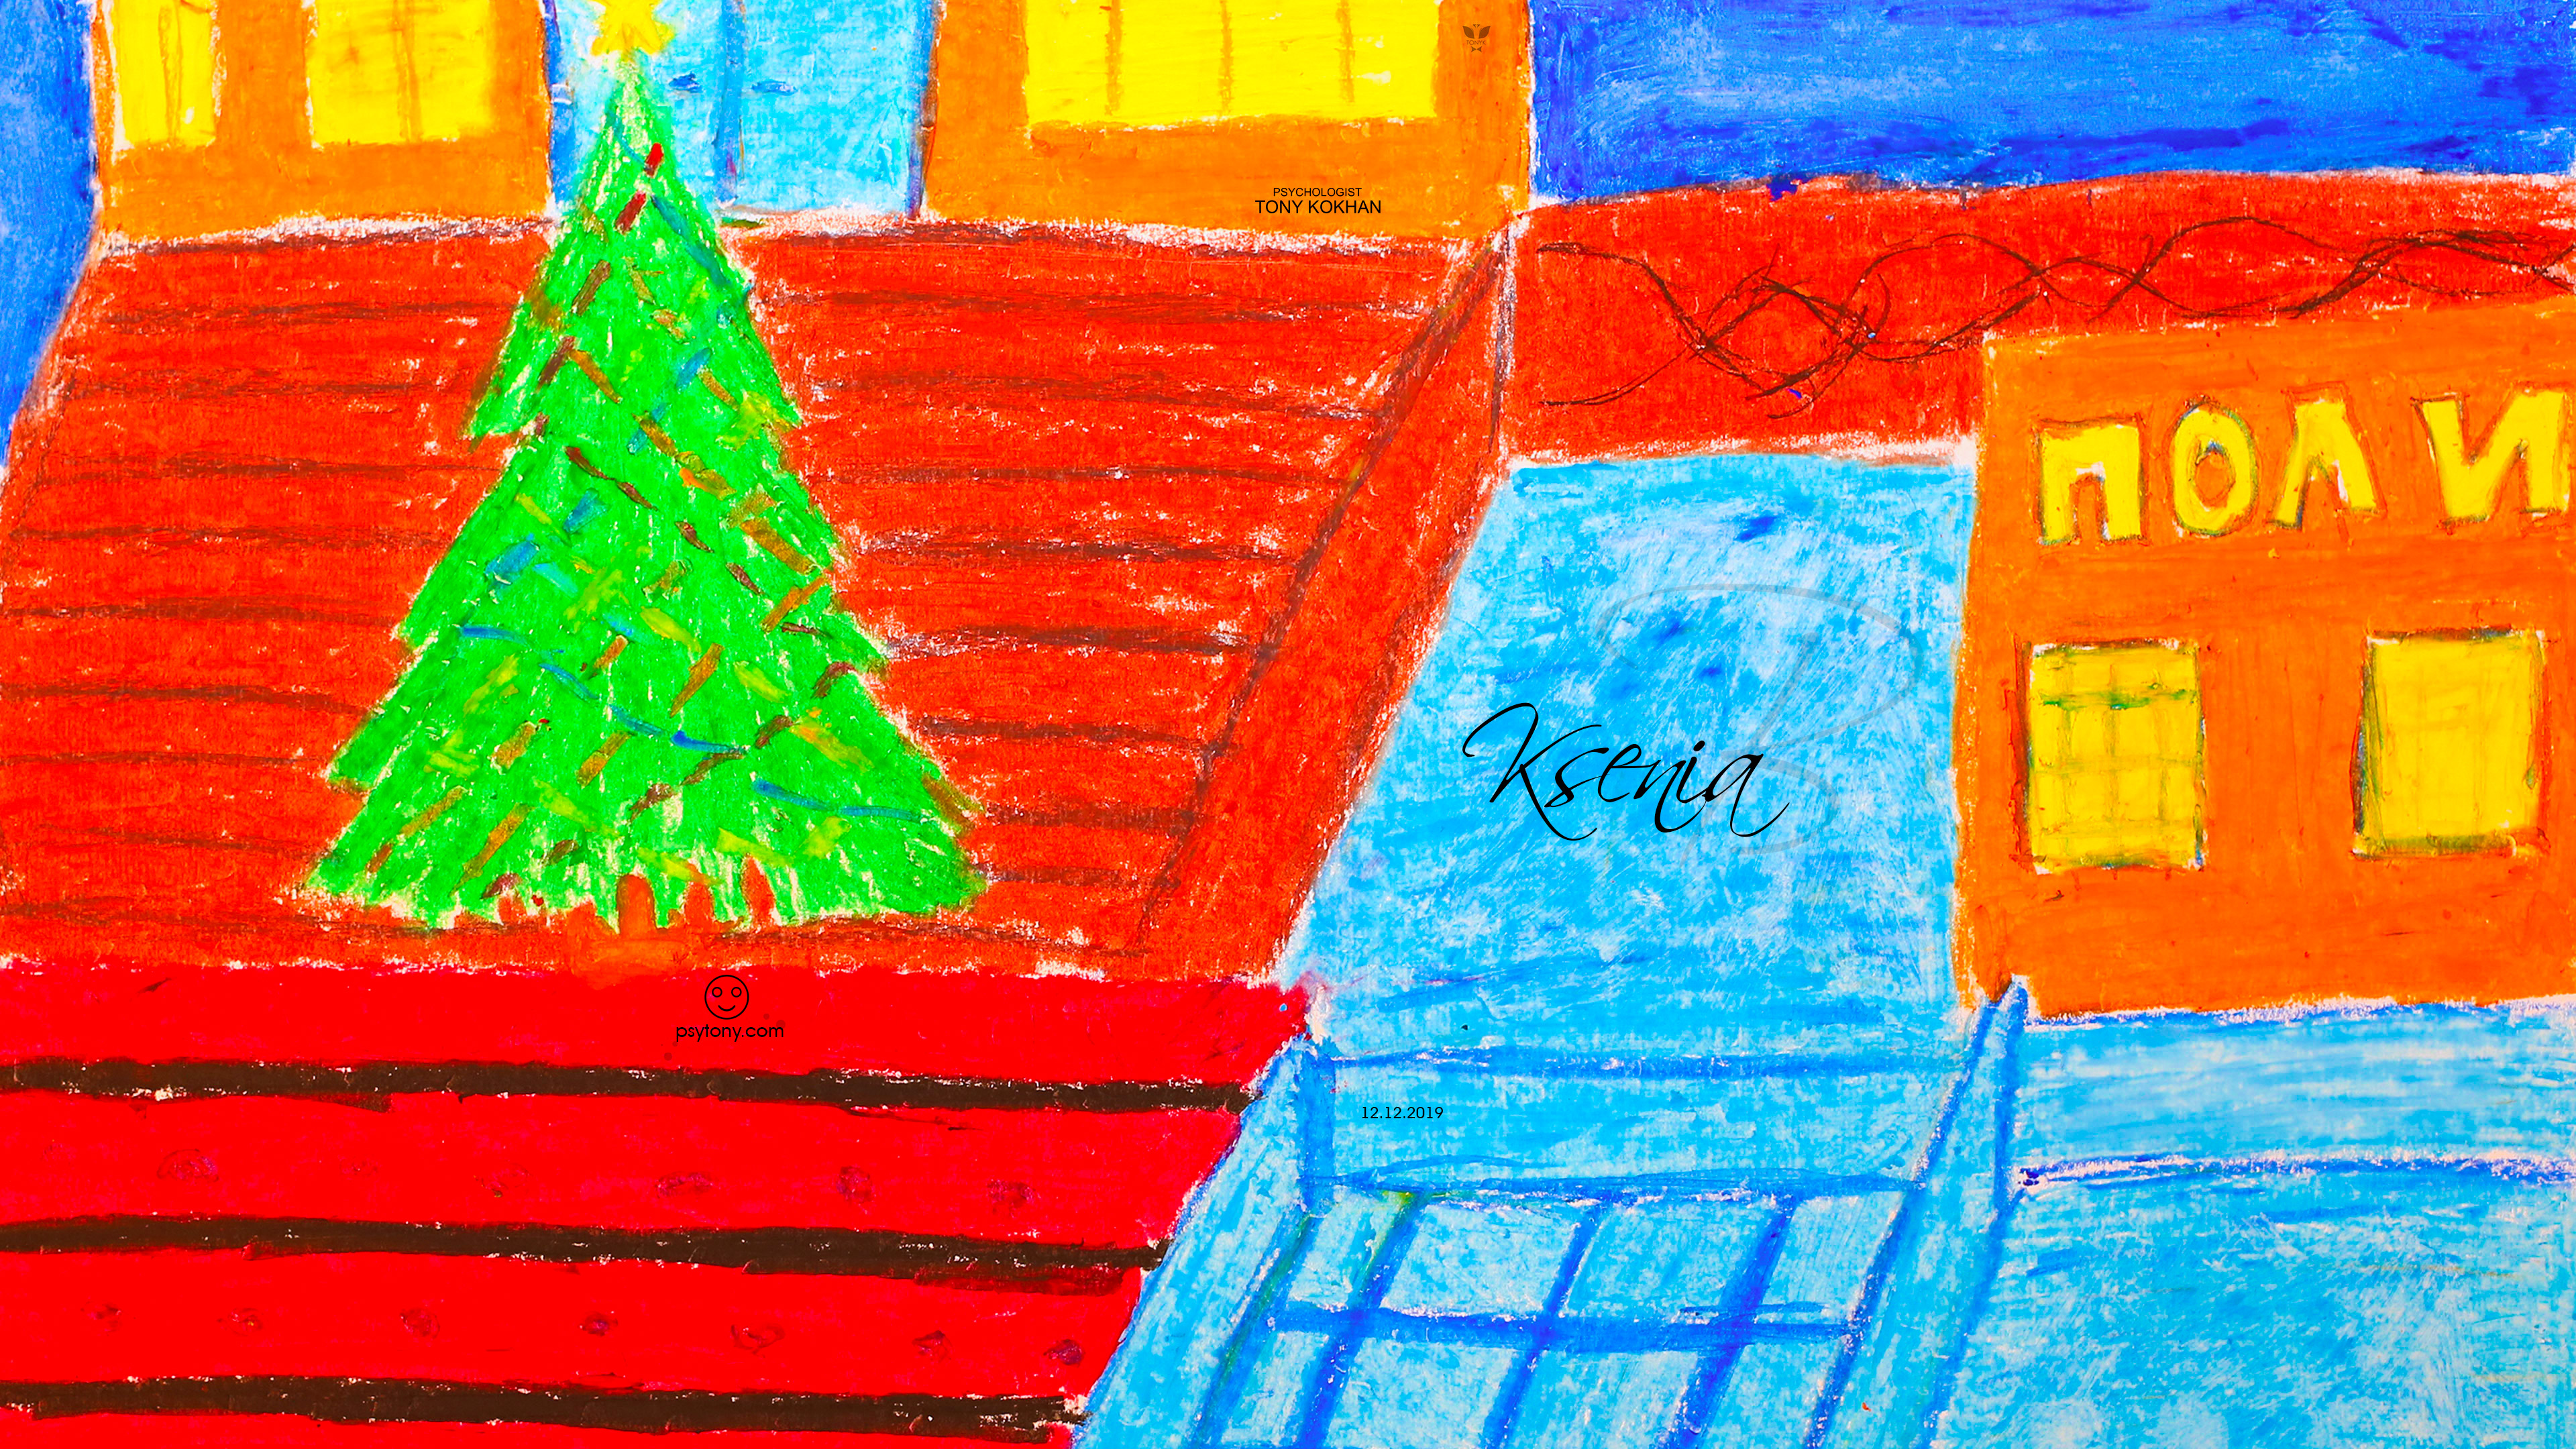 Ksenia-Soul-Girl-Christmas-Tree-Area-Amursk-City-Russia-Police-Picture-Drawing-with-Pastel-2019